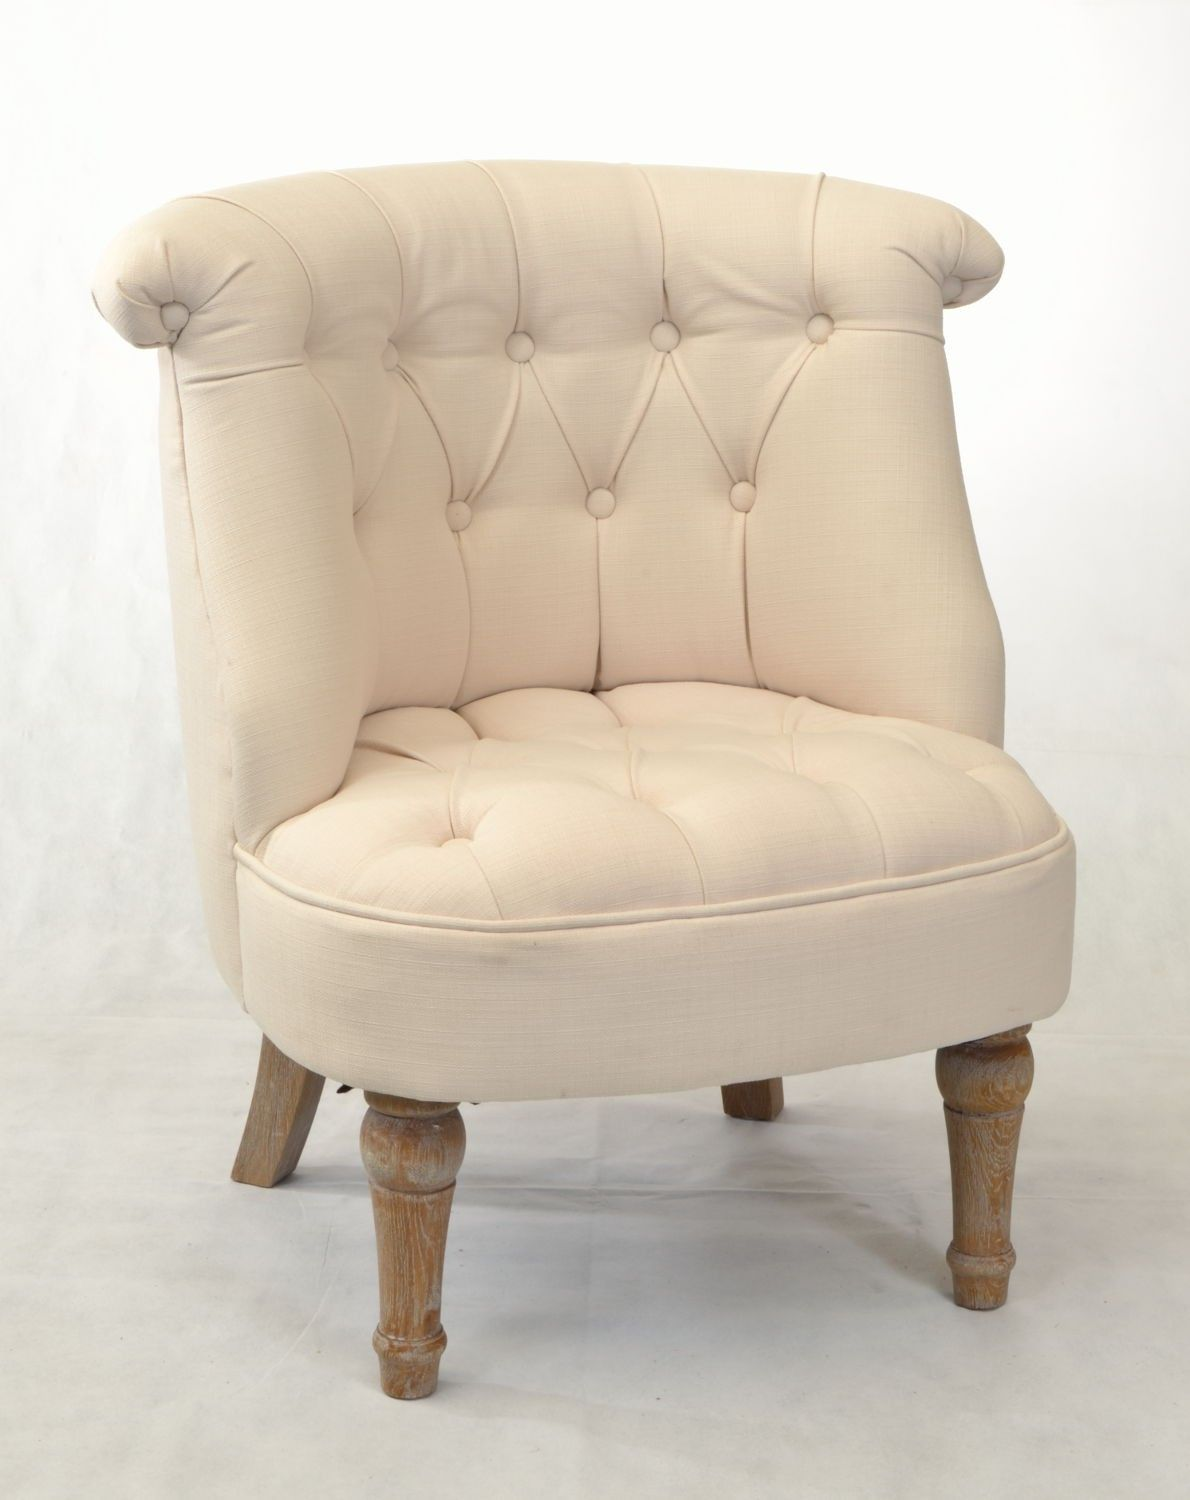 Cromarty chair blossom bedroom chair small sofa chair